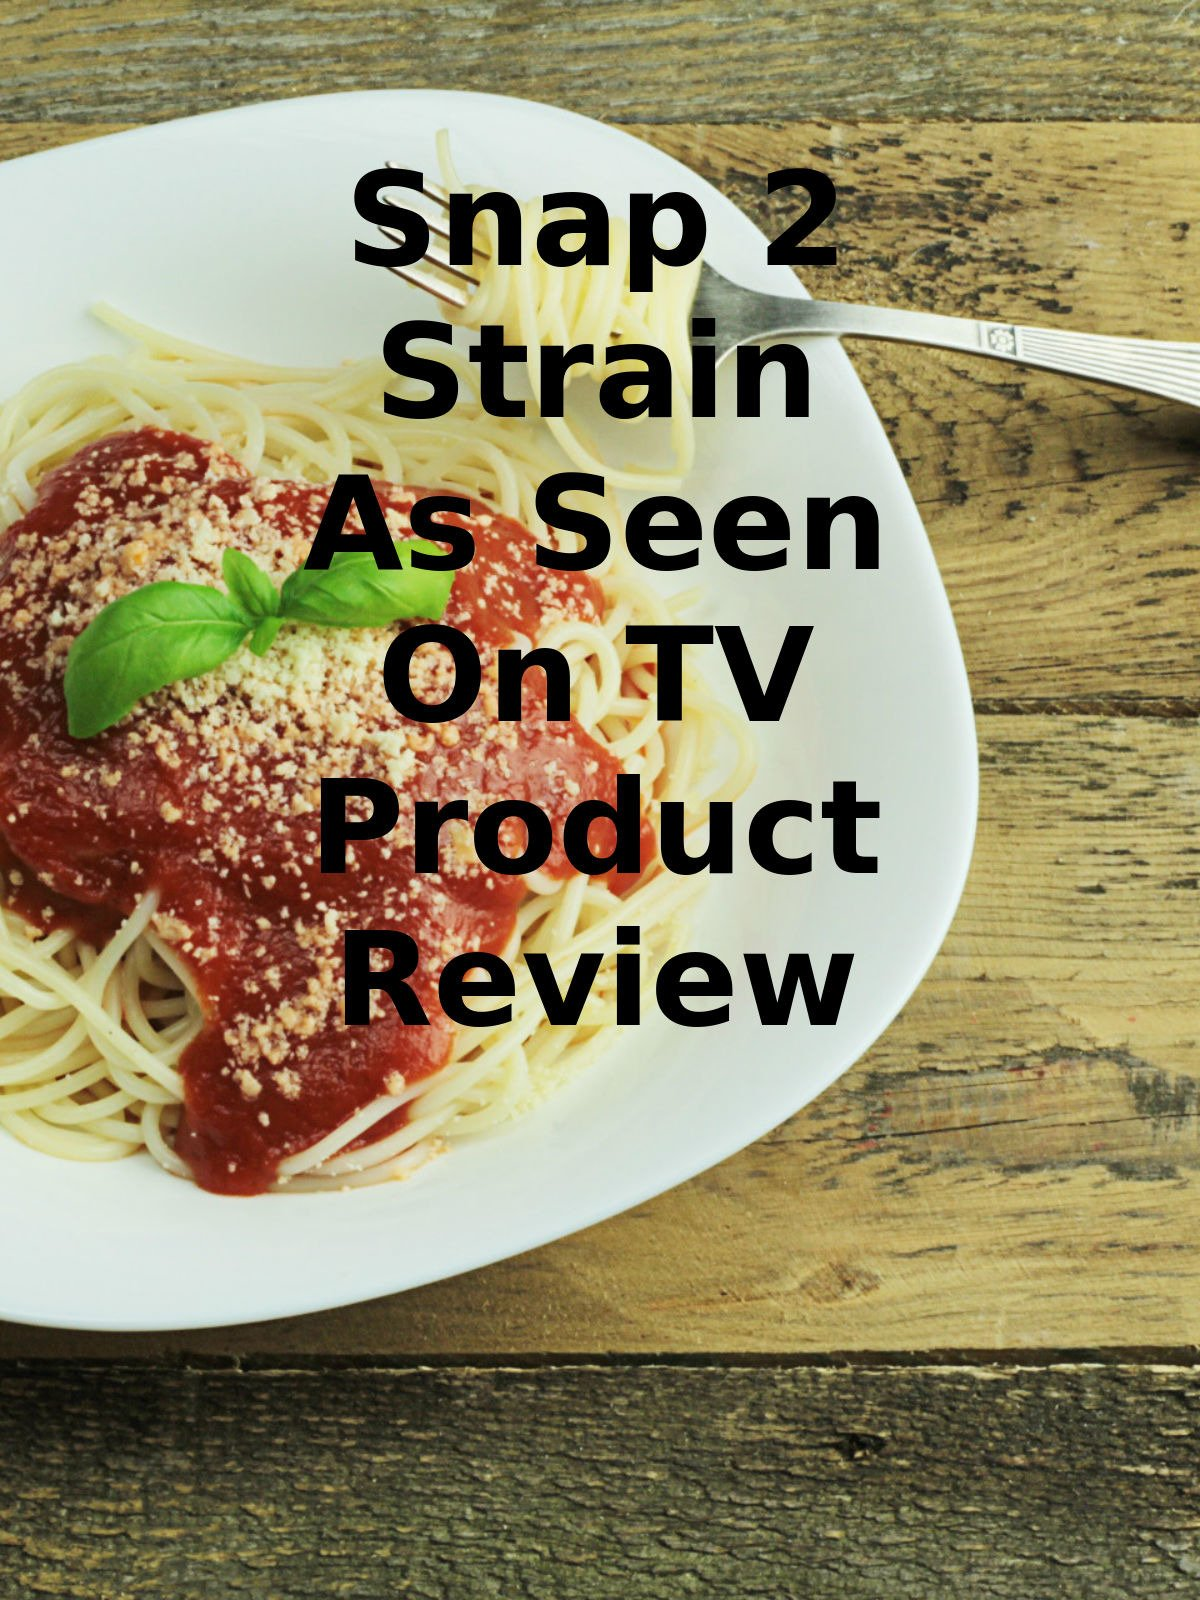 Review: Snap 2 Strain As Seen On TV Product Review on Amazon Prime Video UK